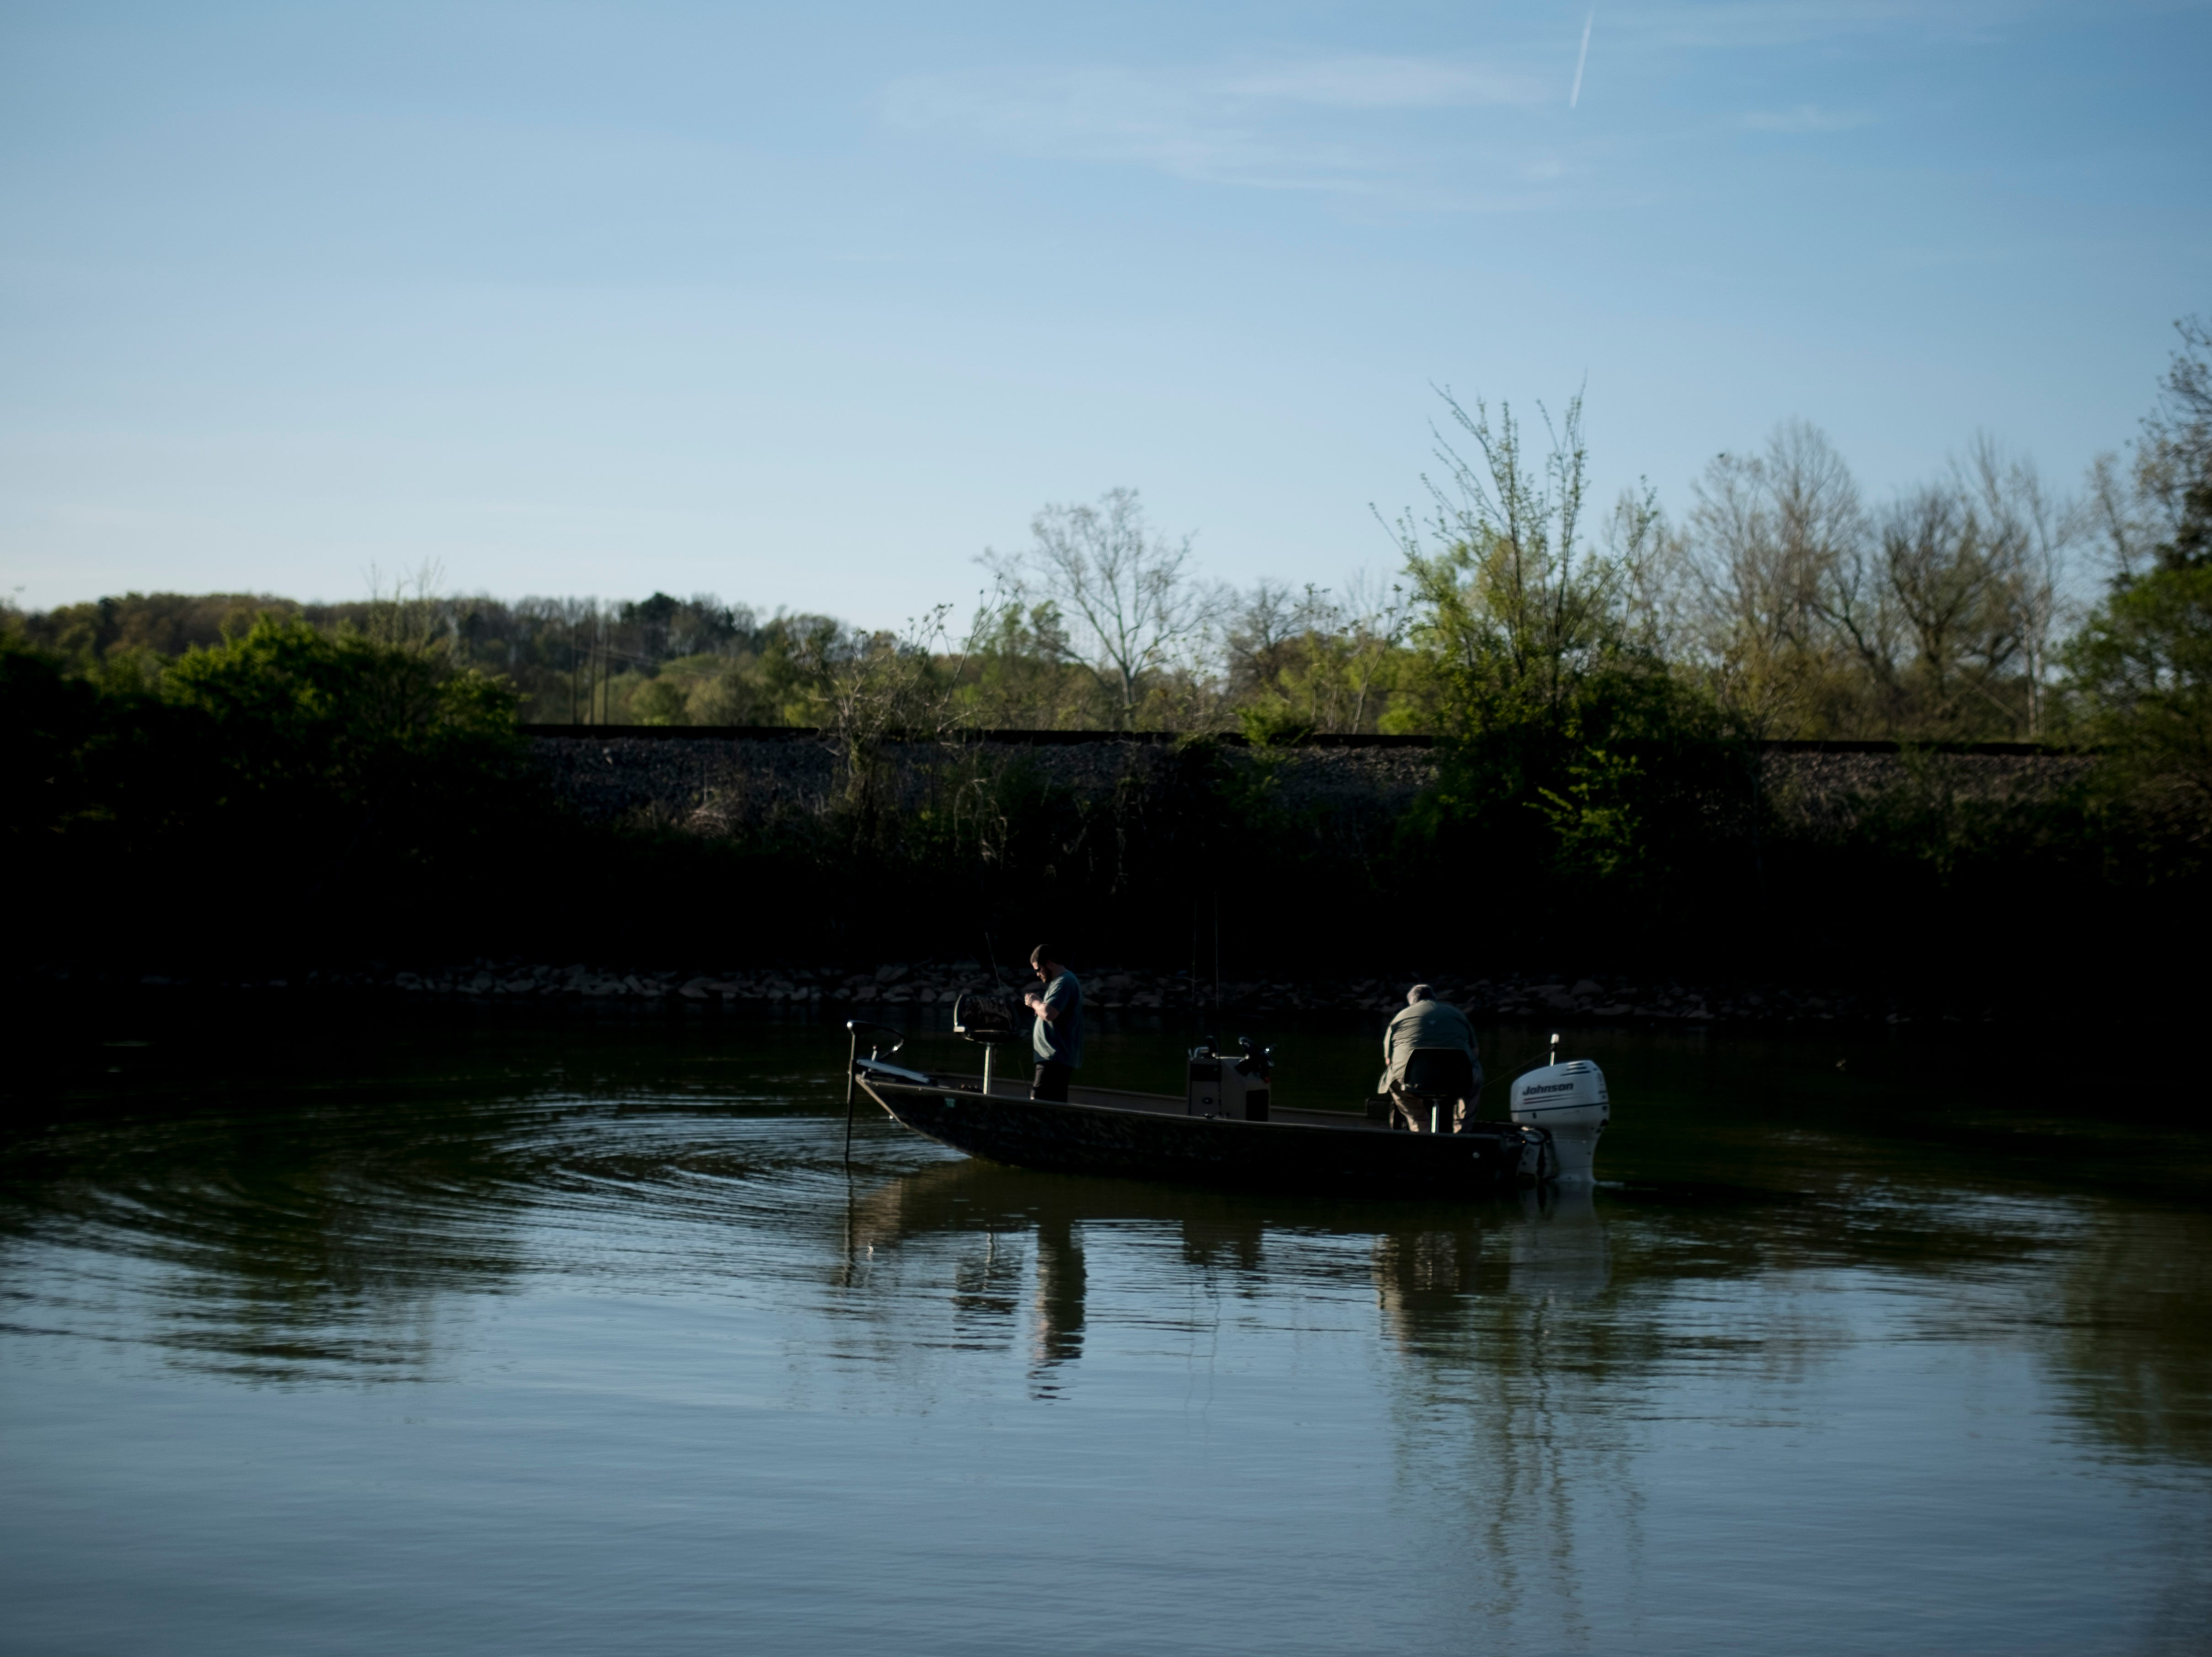 Fishermen float past Concord Park in Farragut, Tennessee on Wednesday, April 10, 2019.